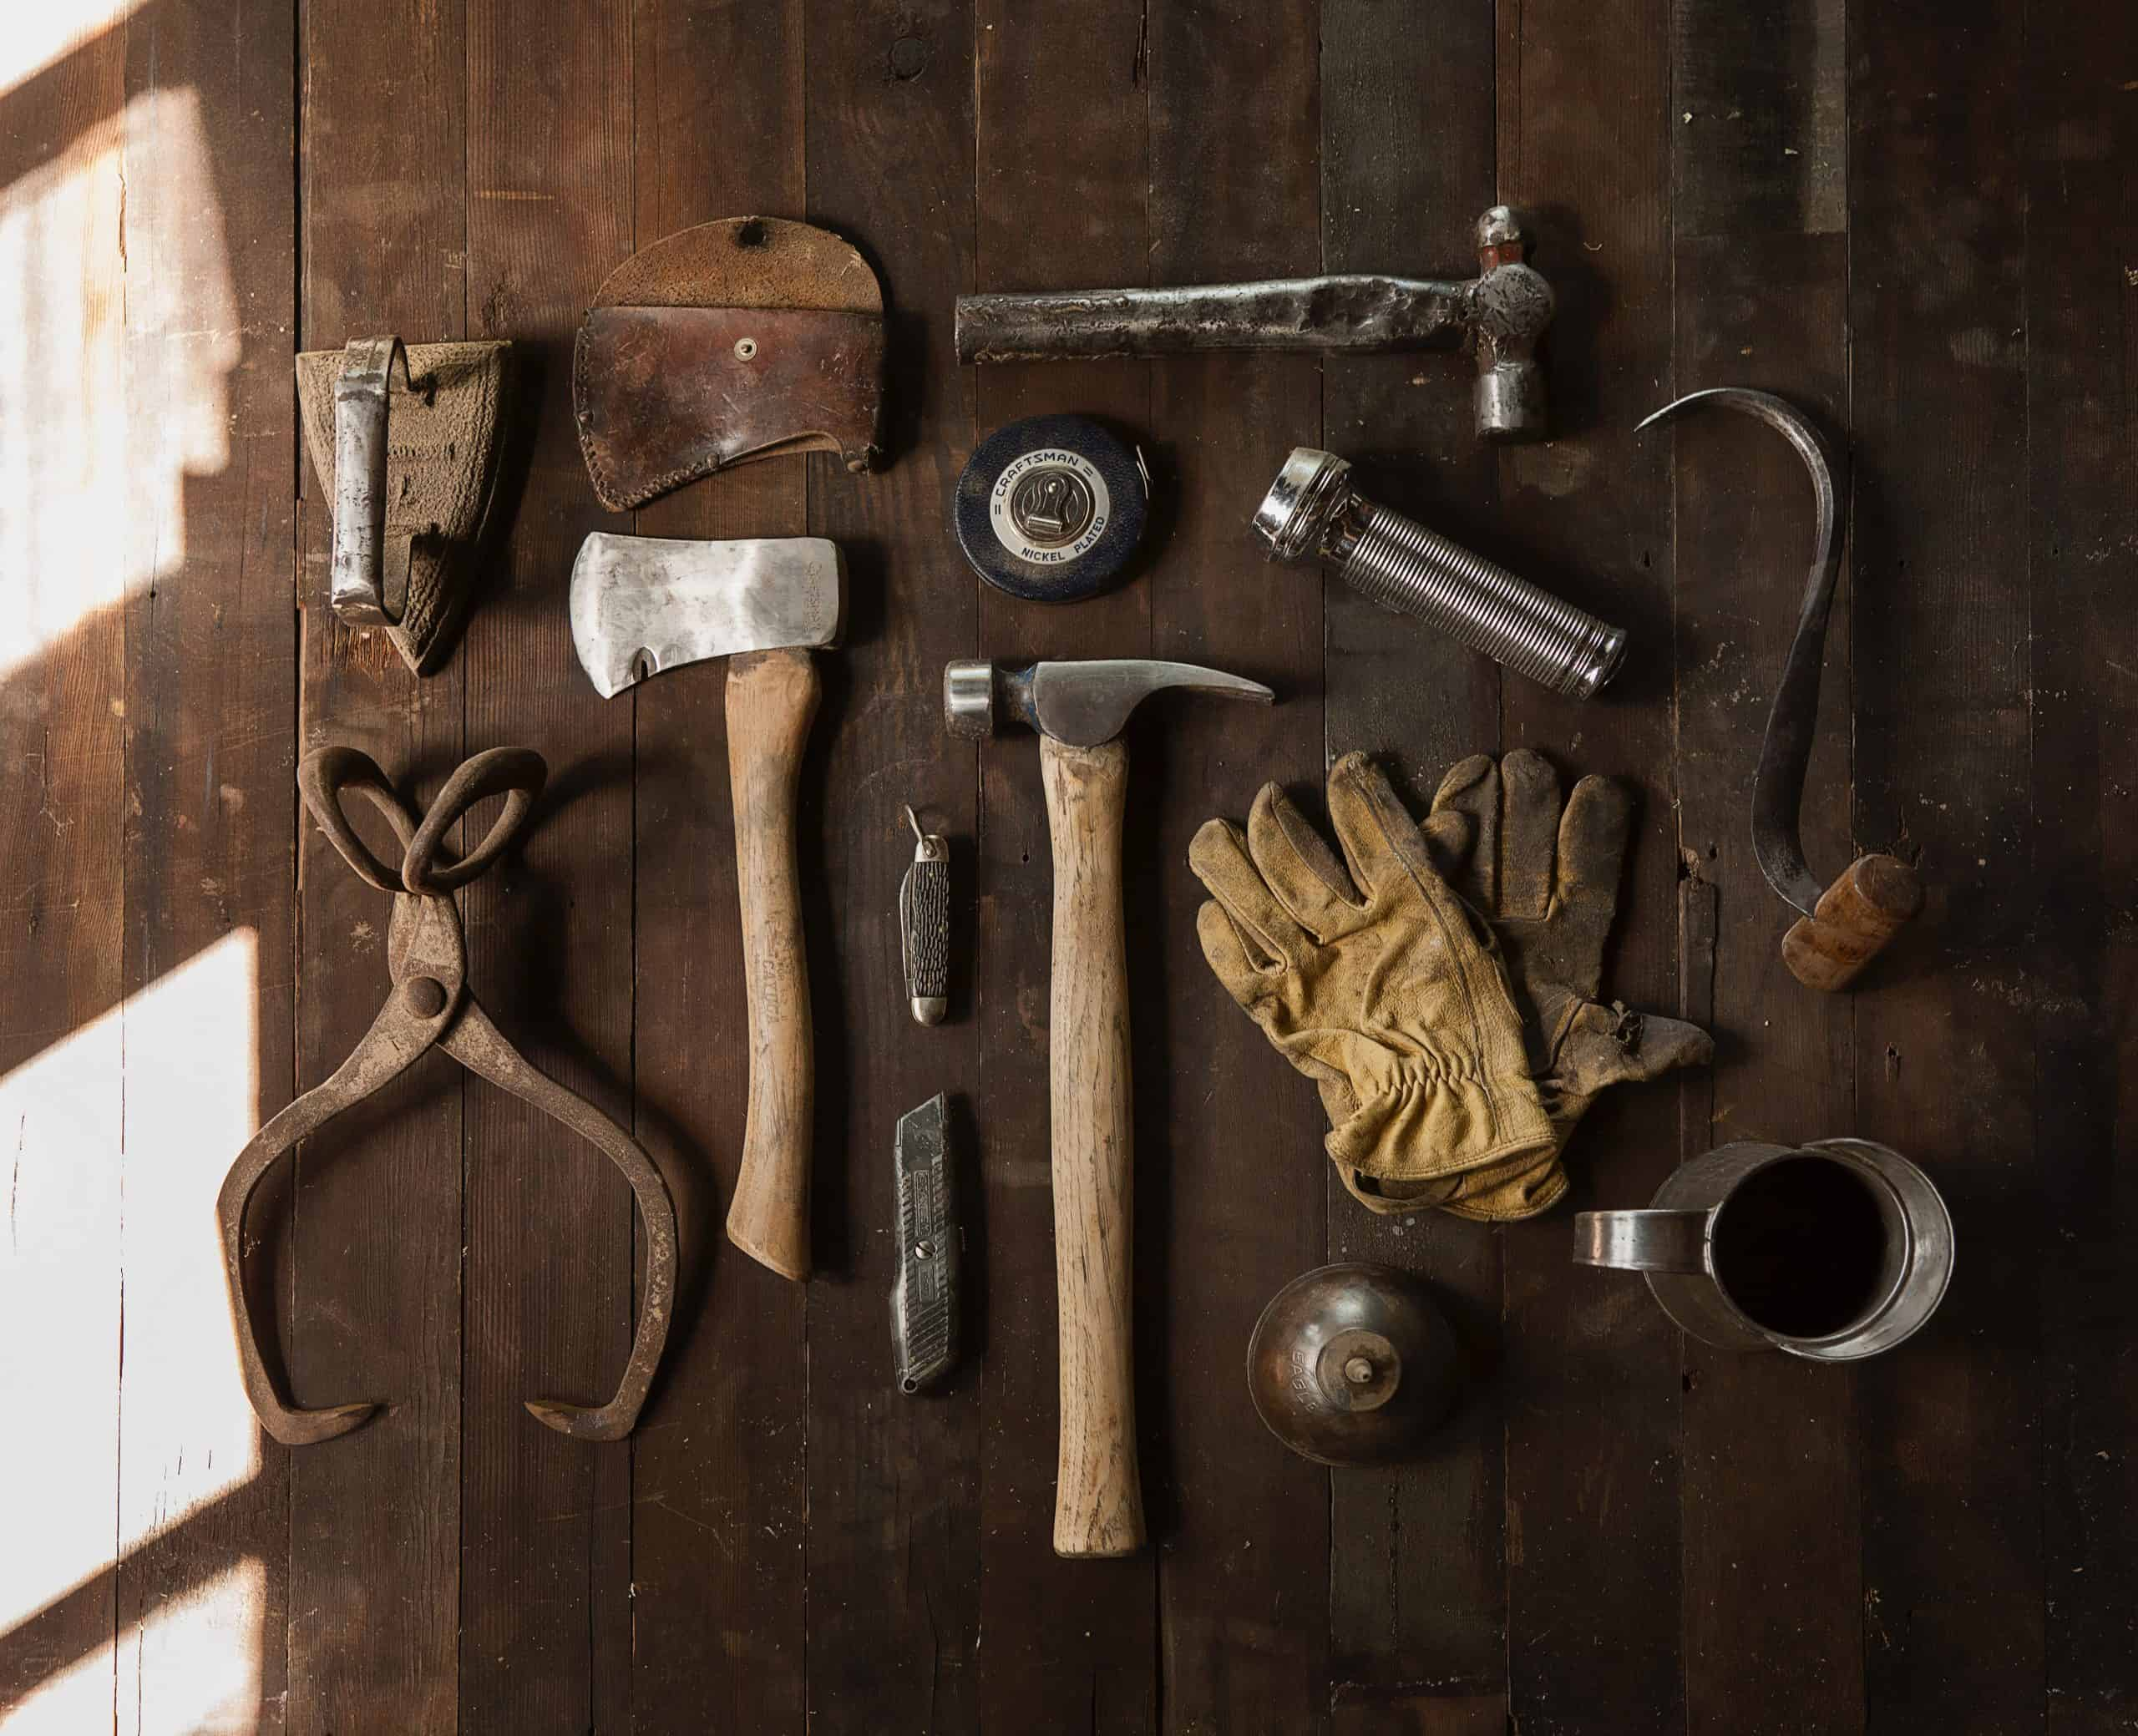 Tools - For Hard Work